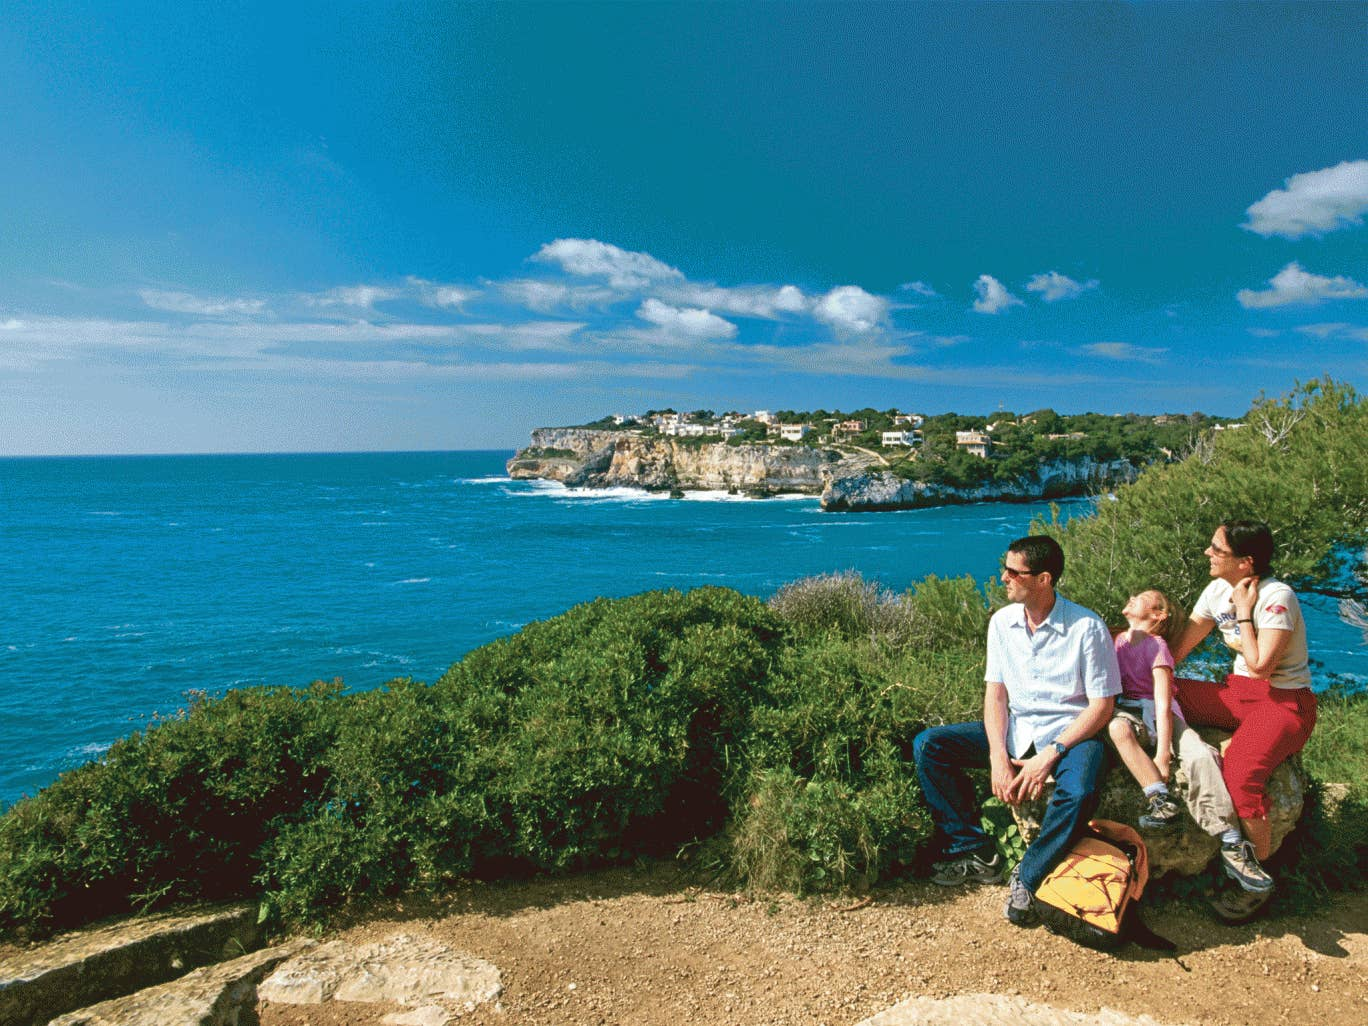 Family fun: get active on the shores of Europe